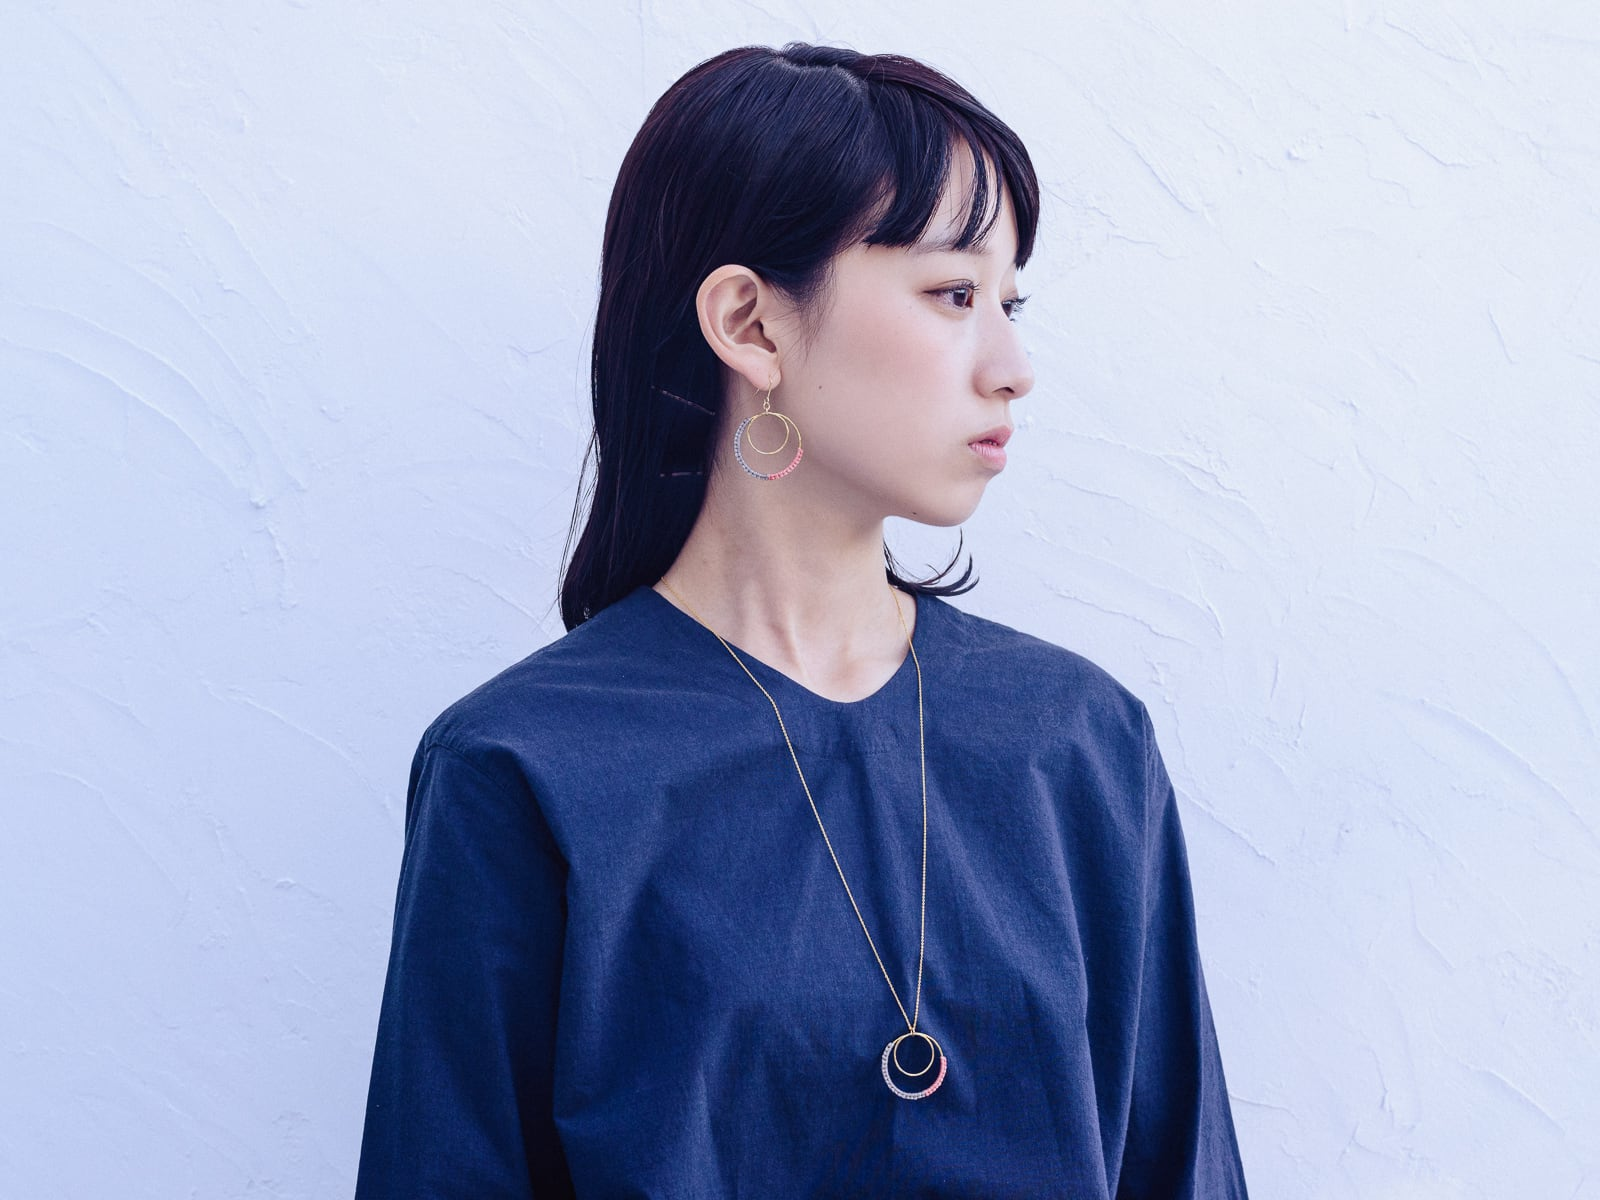 《niruc×KnottWorks》Brass Double Ring Necklace [ロングネックレス]